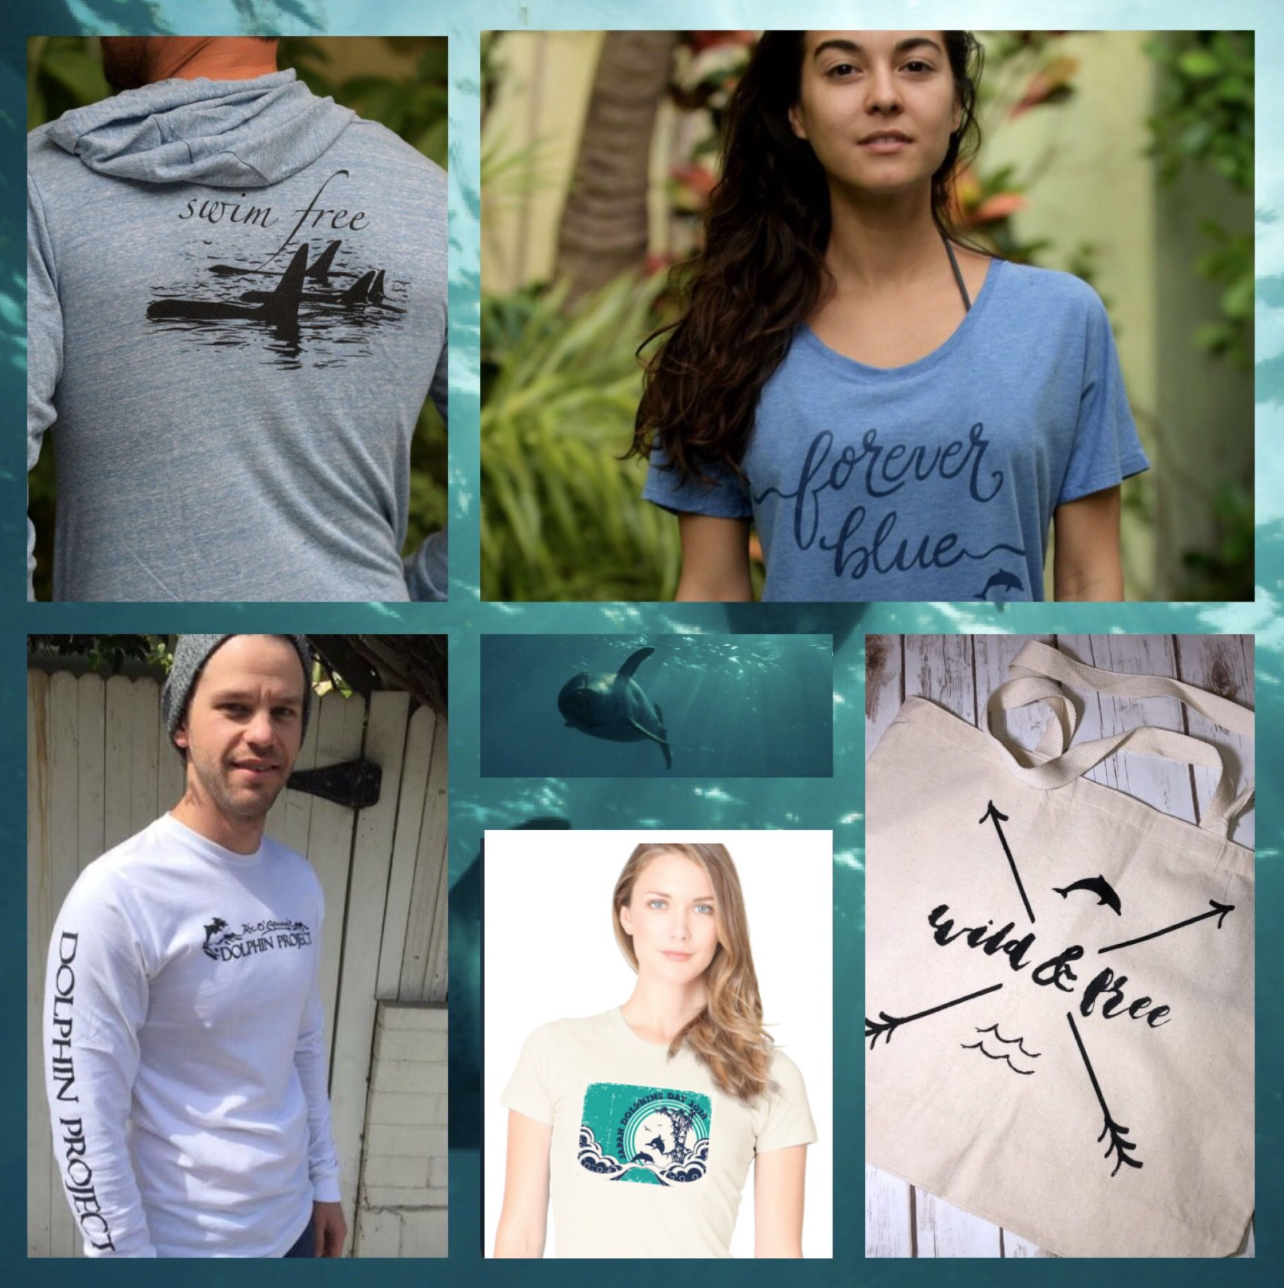 Shop Dolphin Project authentic gear and be a voice for the voiceless